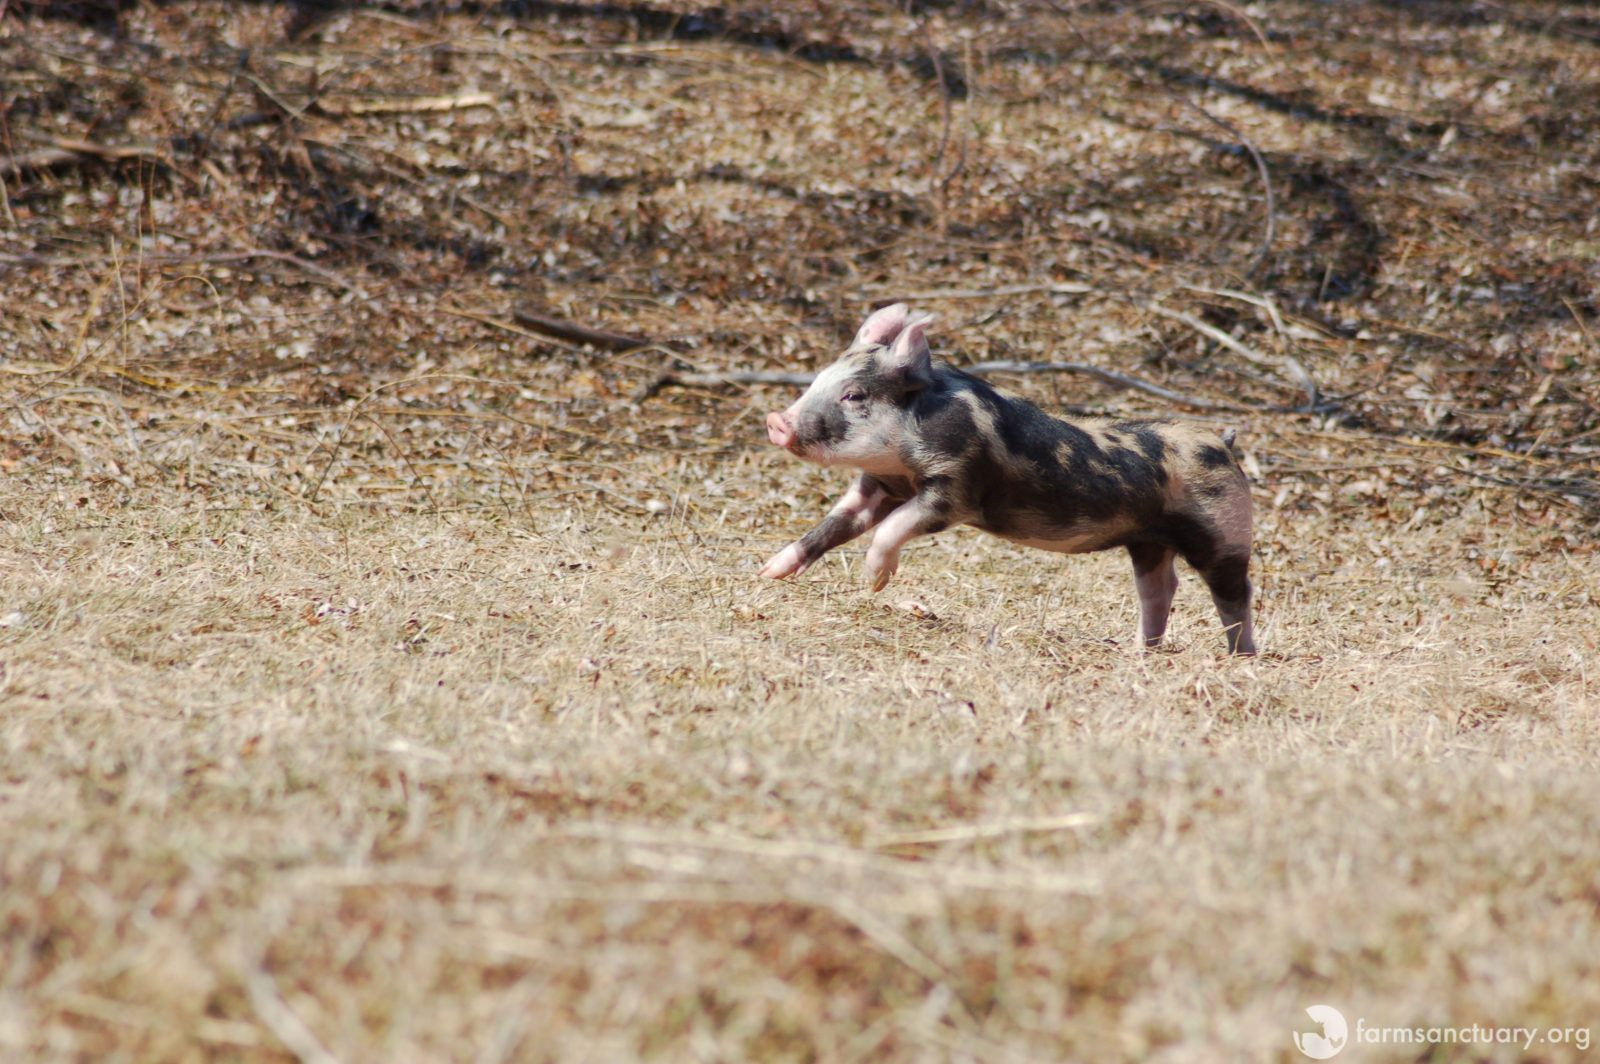 Fiona piglet leaping at Farm Sanctuary